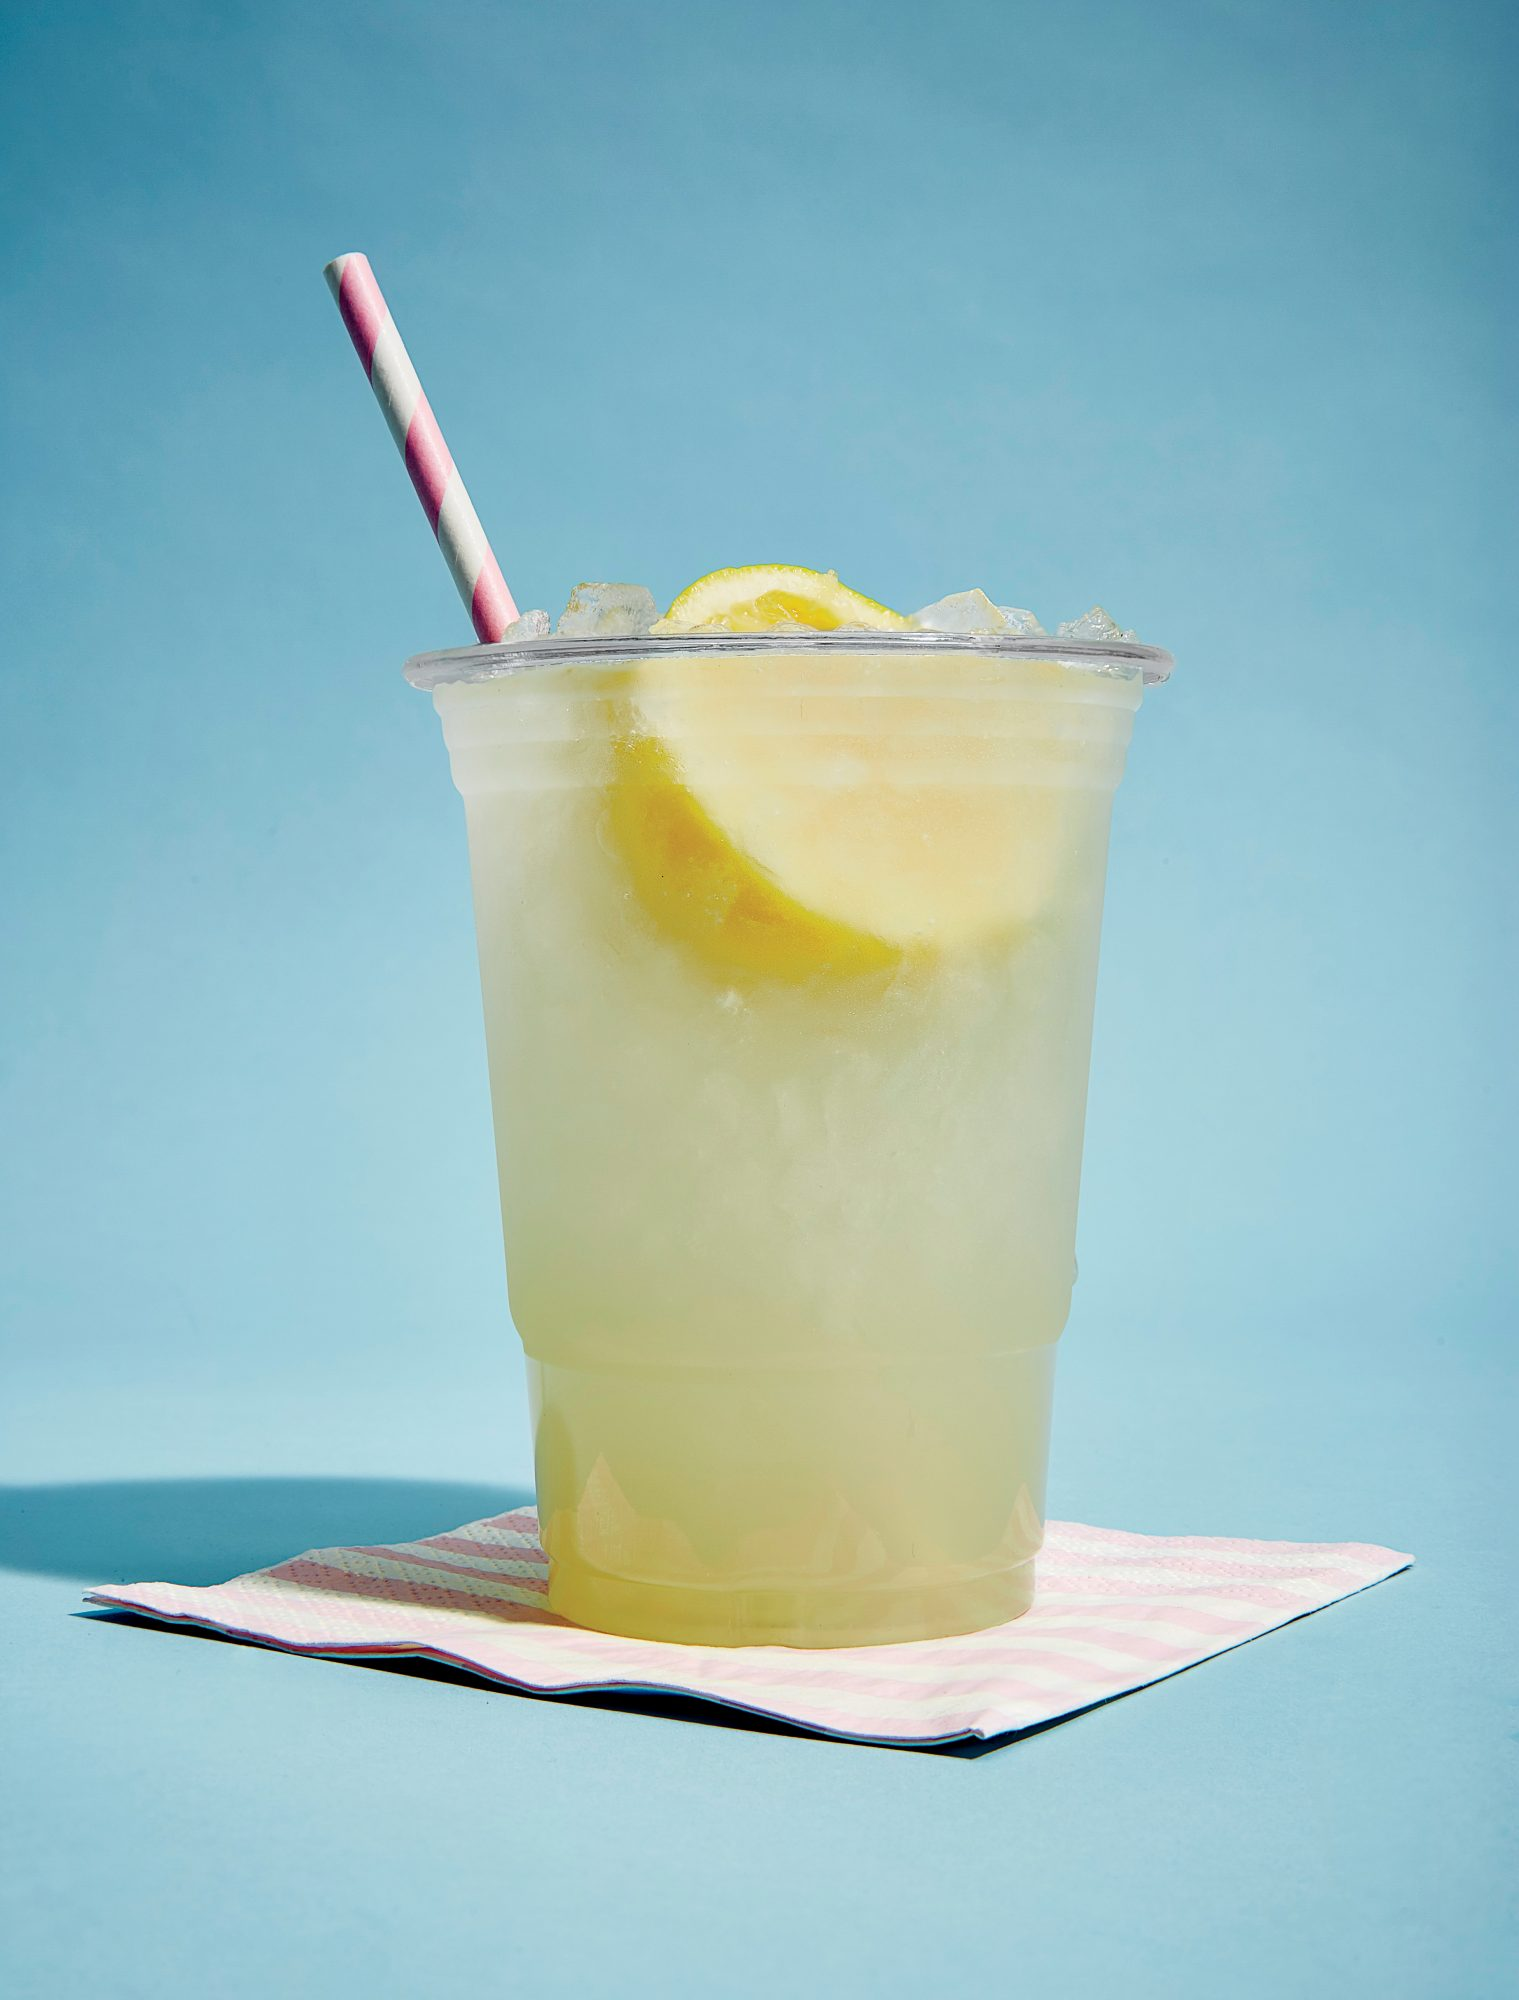 Fresh-Squeezed Lemonade Recipes